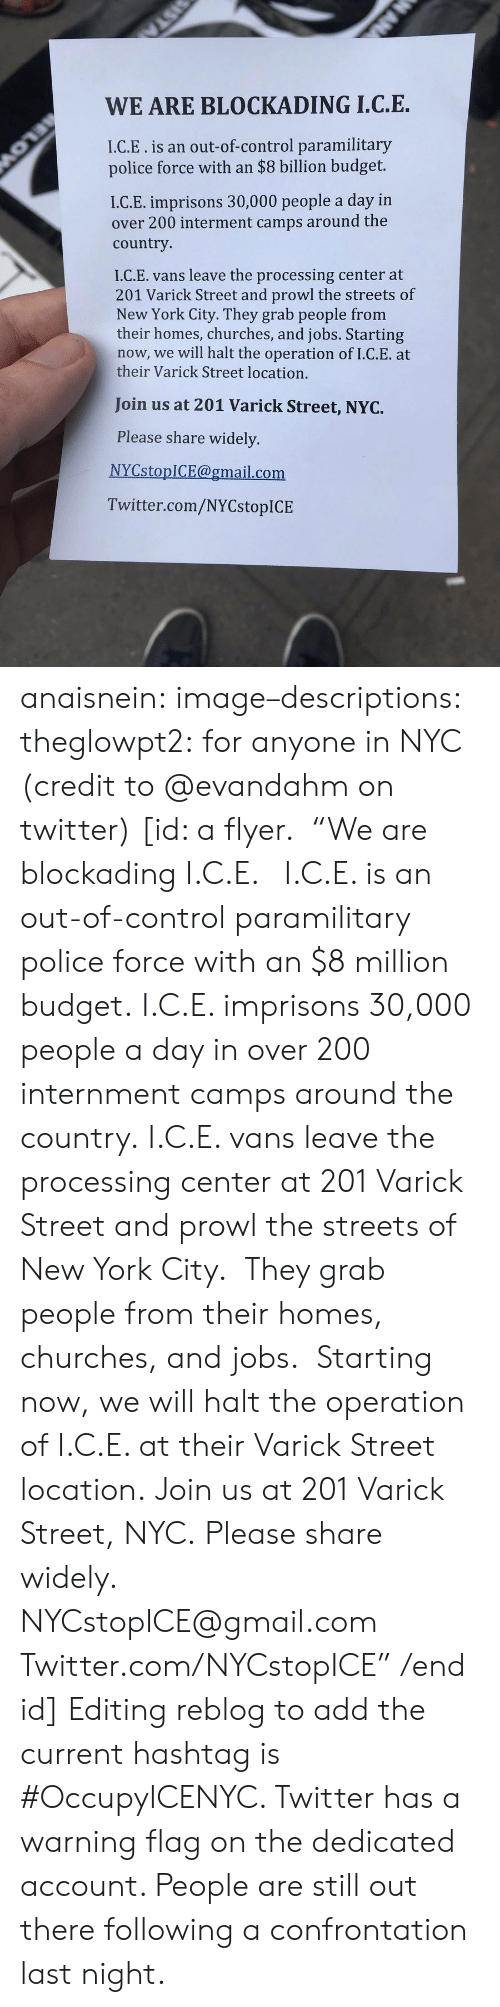 """flyer: WE ARE BLOCKADING I.C.E.  I.C.E.is an out-of-control paramilitary  police force with an $8 billion budget.  I.C.E. imprisons 30,000 people a day in  over 200 interment camps around the  country  I.C.E. vans leave the processing center at  201 Varick Street and prowl the streets of  New York City. They grab people from  their homes, churches, and jobs. Starting  now, we will halt the operation of I.C.E. at  their Varick Street location.  Join us at 201 Varick Street, NYC.  Please share widely.  NYCstopICE@gmail.com  Twitter.com/NYCstopICE anaisnein: image–descriptions:  theglowpt2: for anyone in NYC (credit to @evandahm on twitter) [id: a flyer. """"We are blockading I.C.E.  I.C.E. is an out-of-control paramilitary police force with an $8 million budget. I.C.E. imprisons 30,000 people a day in over 200 internment camps around the country. I.C.E. vans leave the processing center at 201 Varick Street and prowl the streets of New York City. They grab people from their homes, churches, and jobs. Starting now, we will halt the operation of I.C.E. at their Varick Street location. Join us at 201 Varick Street, NYC. Please share widely. NYCstopICE@gmail.com Twitter.com/NYCstopICE"""" /end id]   Editing reblog to add the current hashtag is #OccupyICENYC. Twitter has a warning flag on the dedicated account. People are still out there following a confrontation last night."""